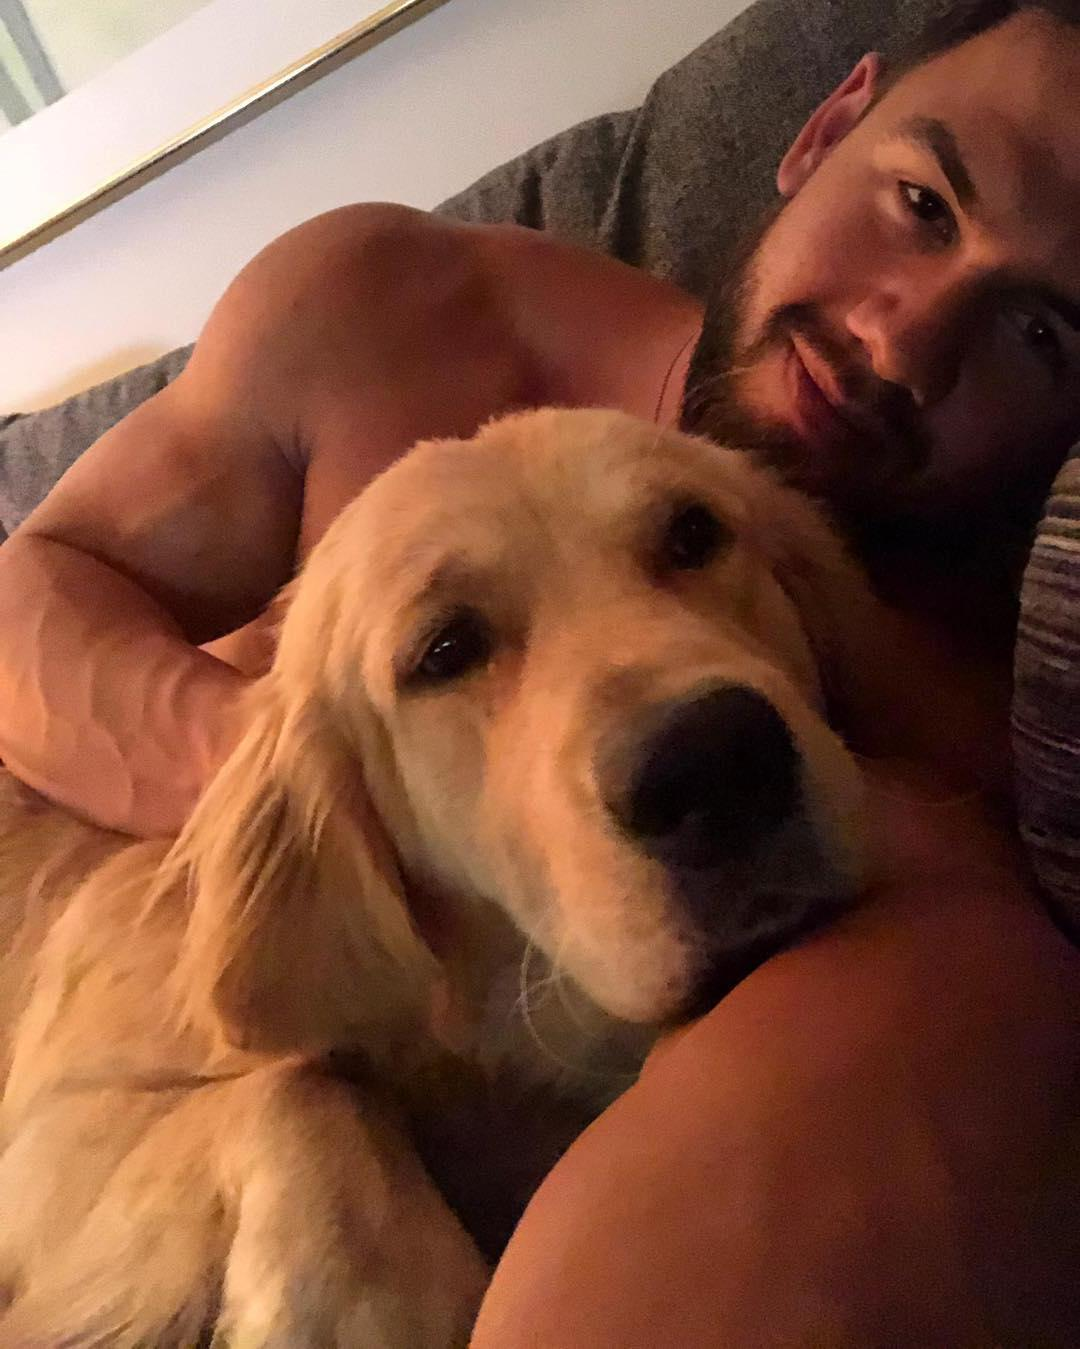 handsome-bearded-nude-dude-laying-selfie-with-adorable-yellow-labrador-puppy-dog